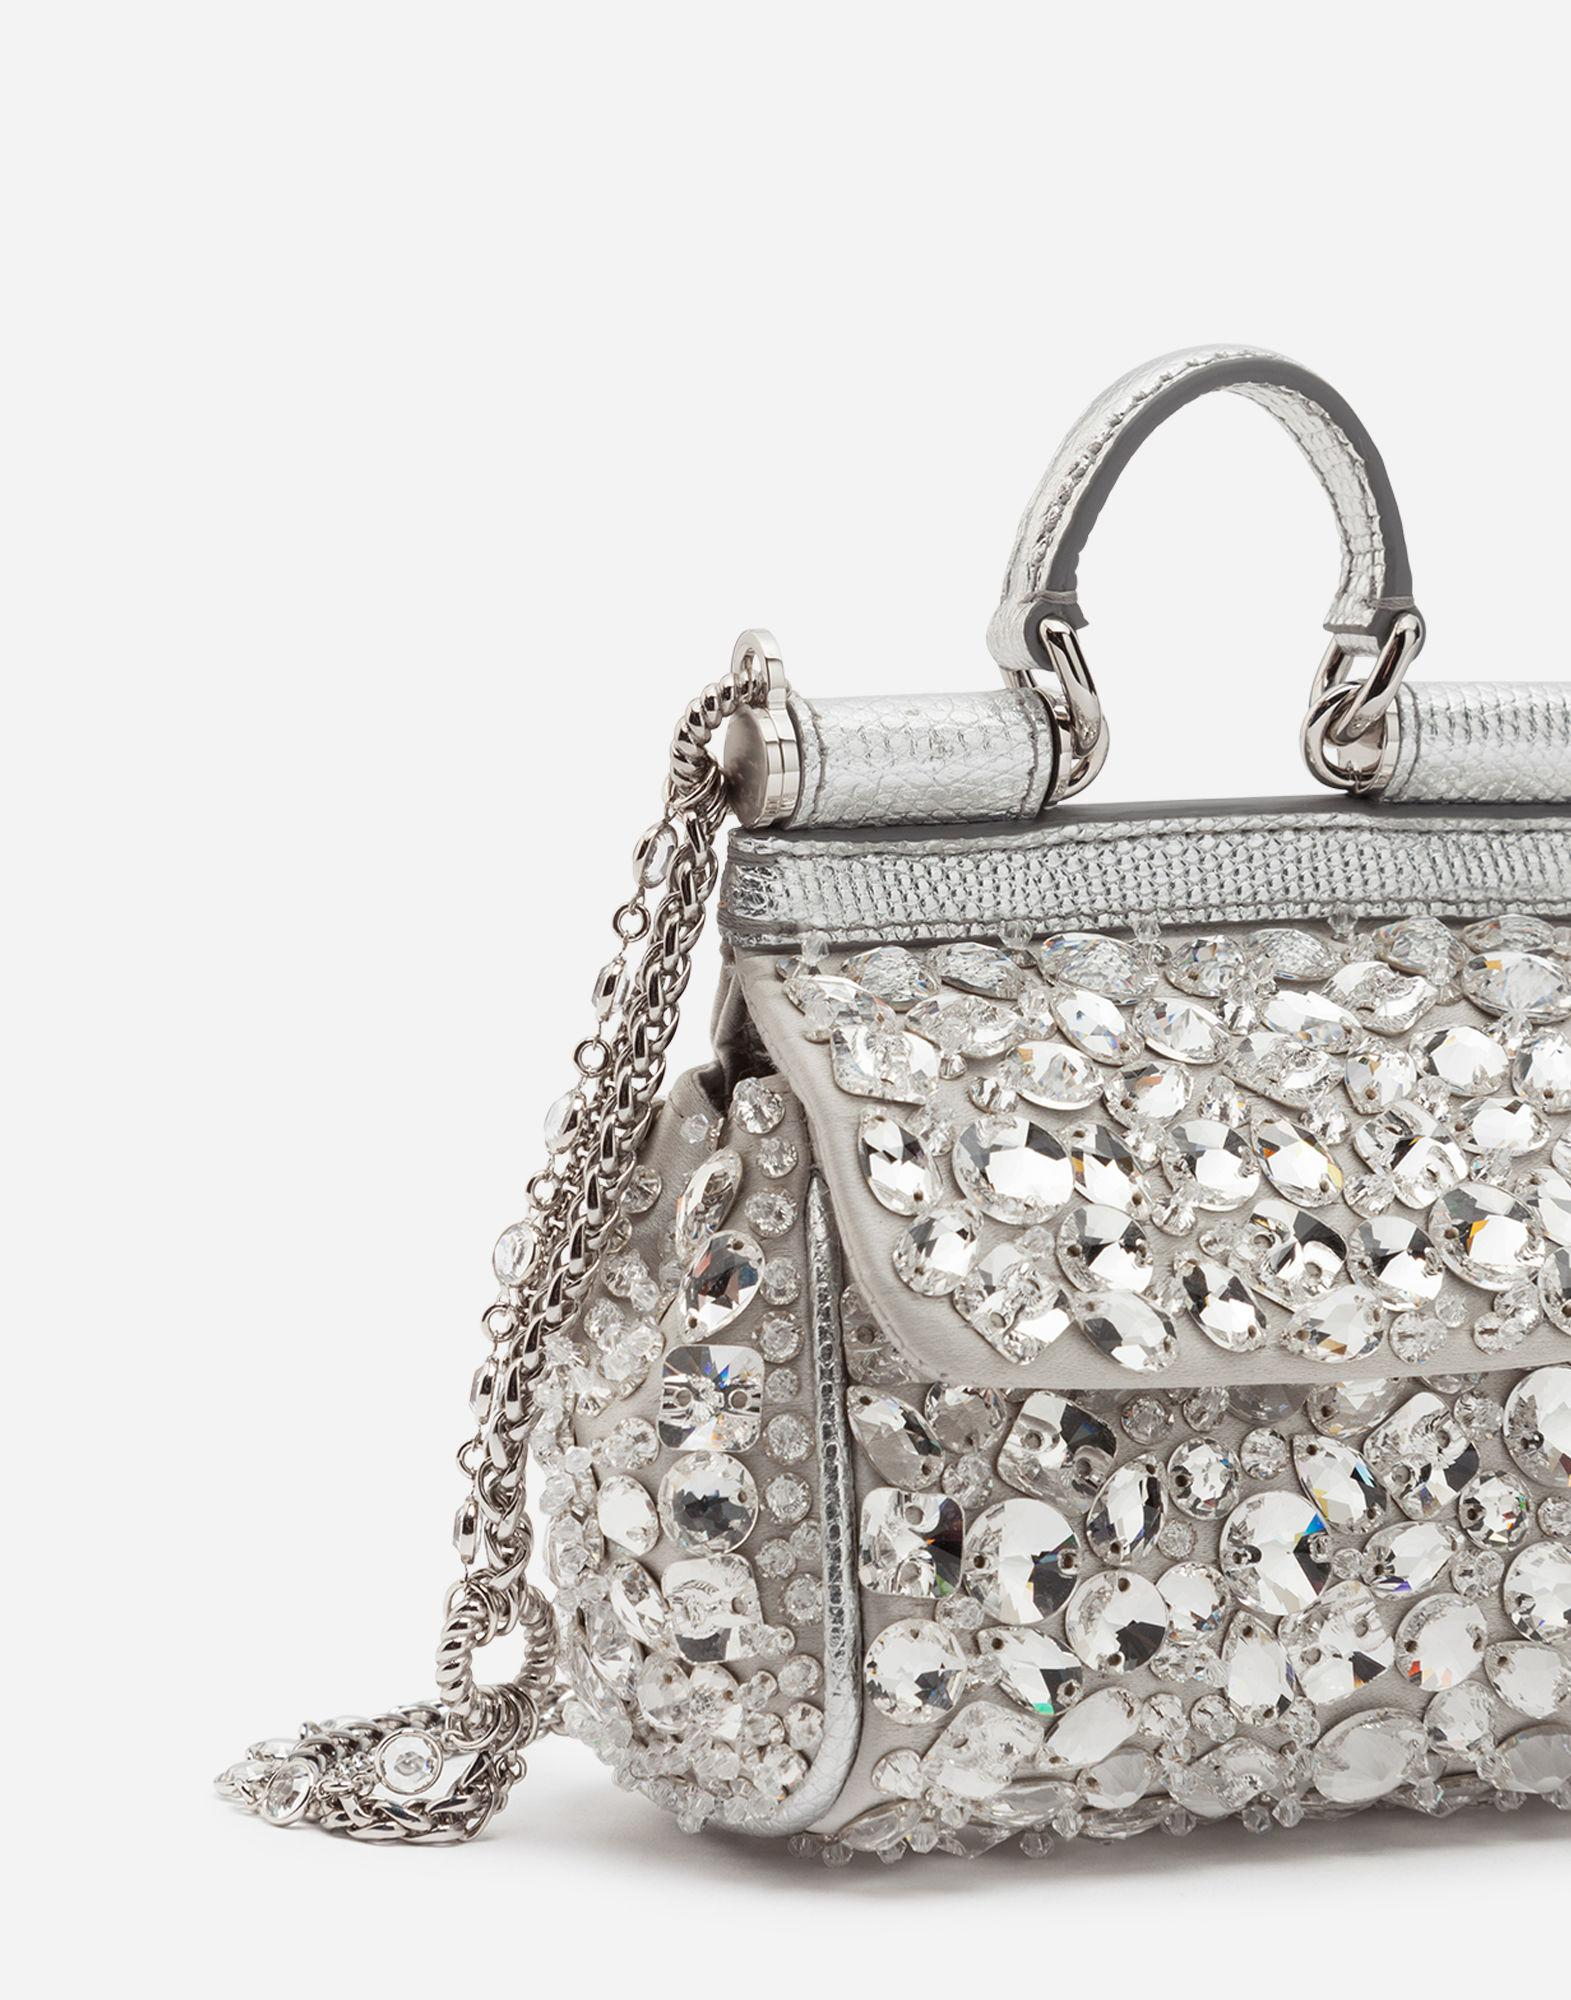 Lyst - Dolce   Gabbana Micro Sicily Bag In Satin With Embroideries in  Metallic - Save 52% c8f2afe1bd97c